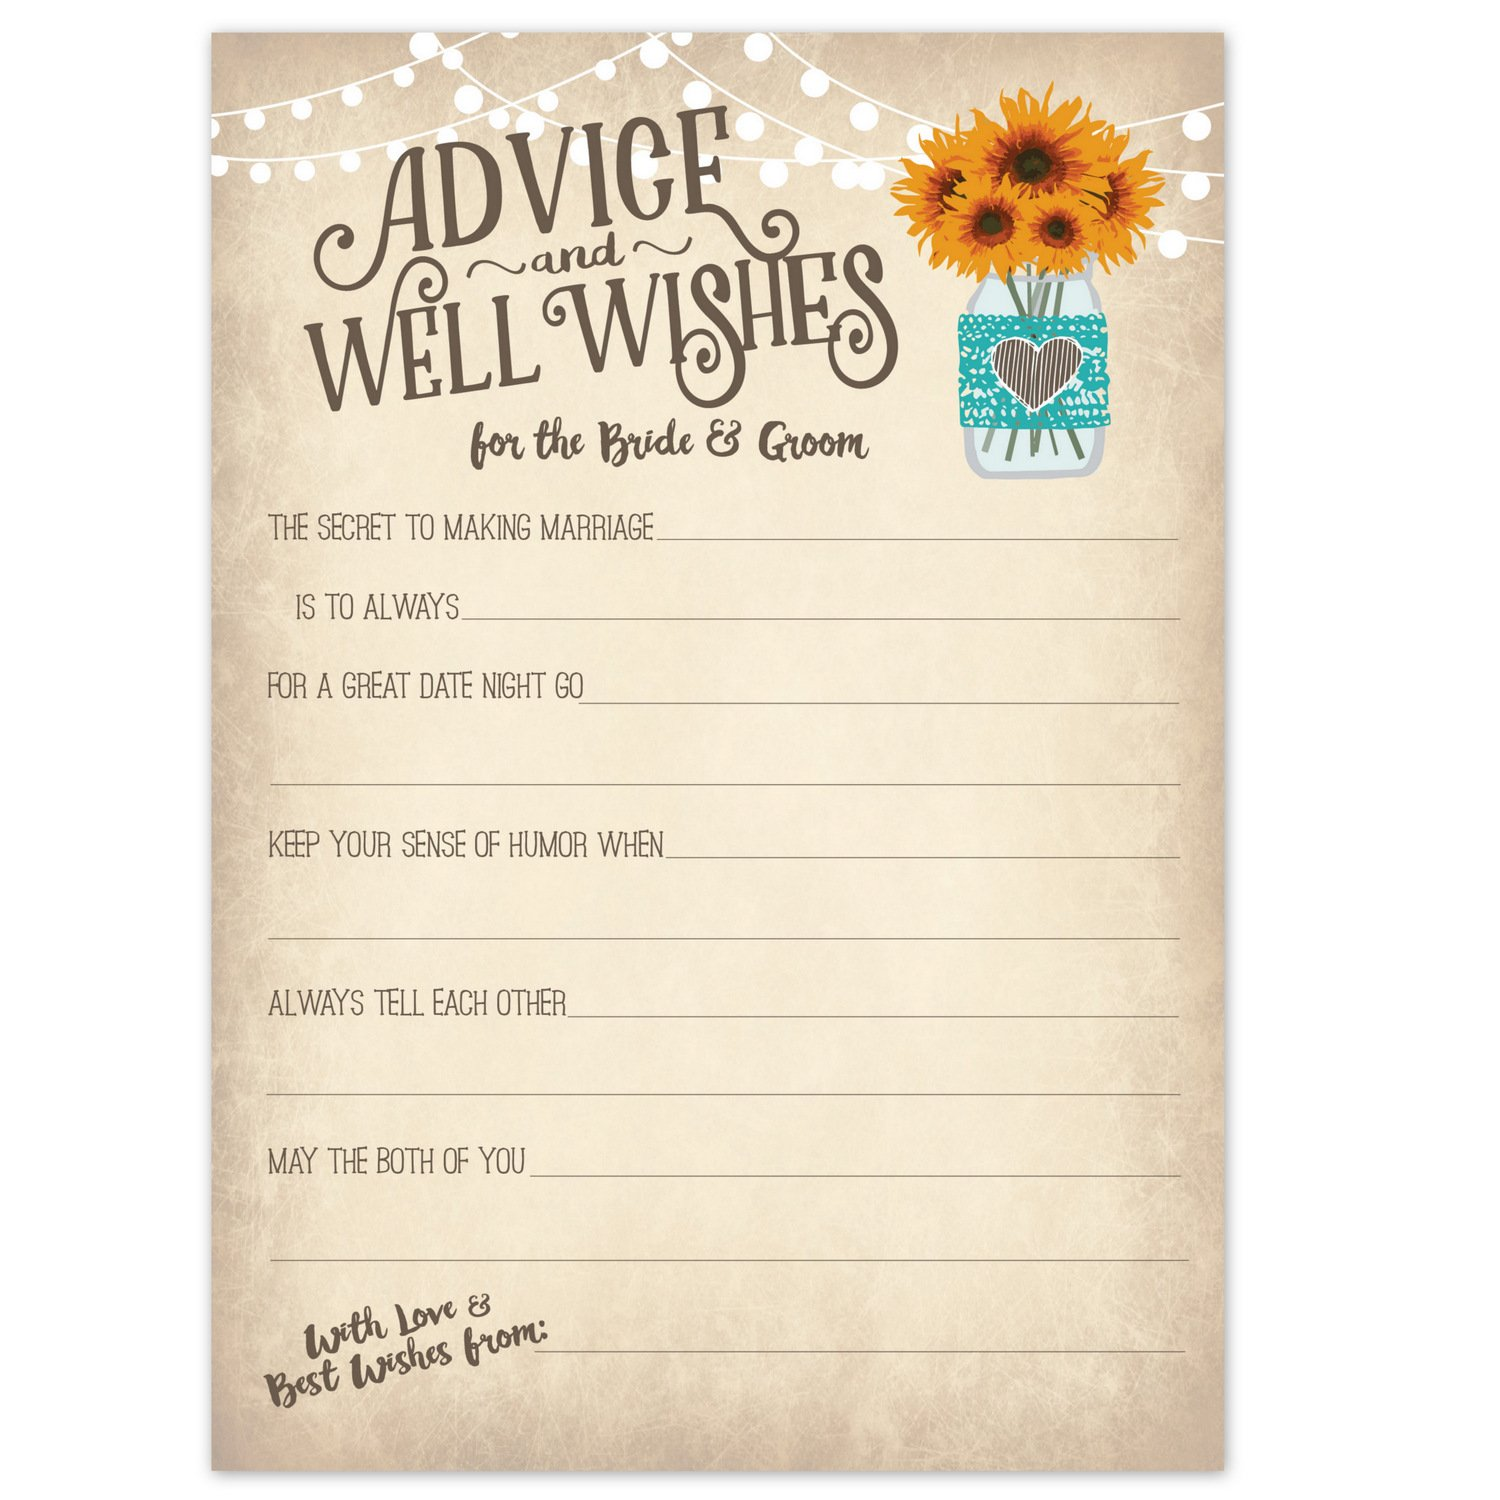 Vintage Rustic Country Wedding Advice Cards - Sunflowers in Mason Jar - Advice & Well Wishes for the Bride & Groom - Fill In the Blank Style - Bridal Shower Game or Reception Activity (50 Count)